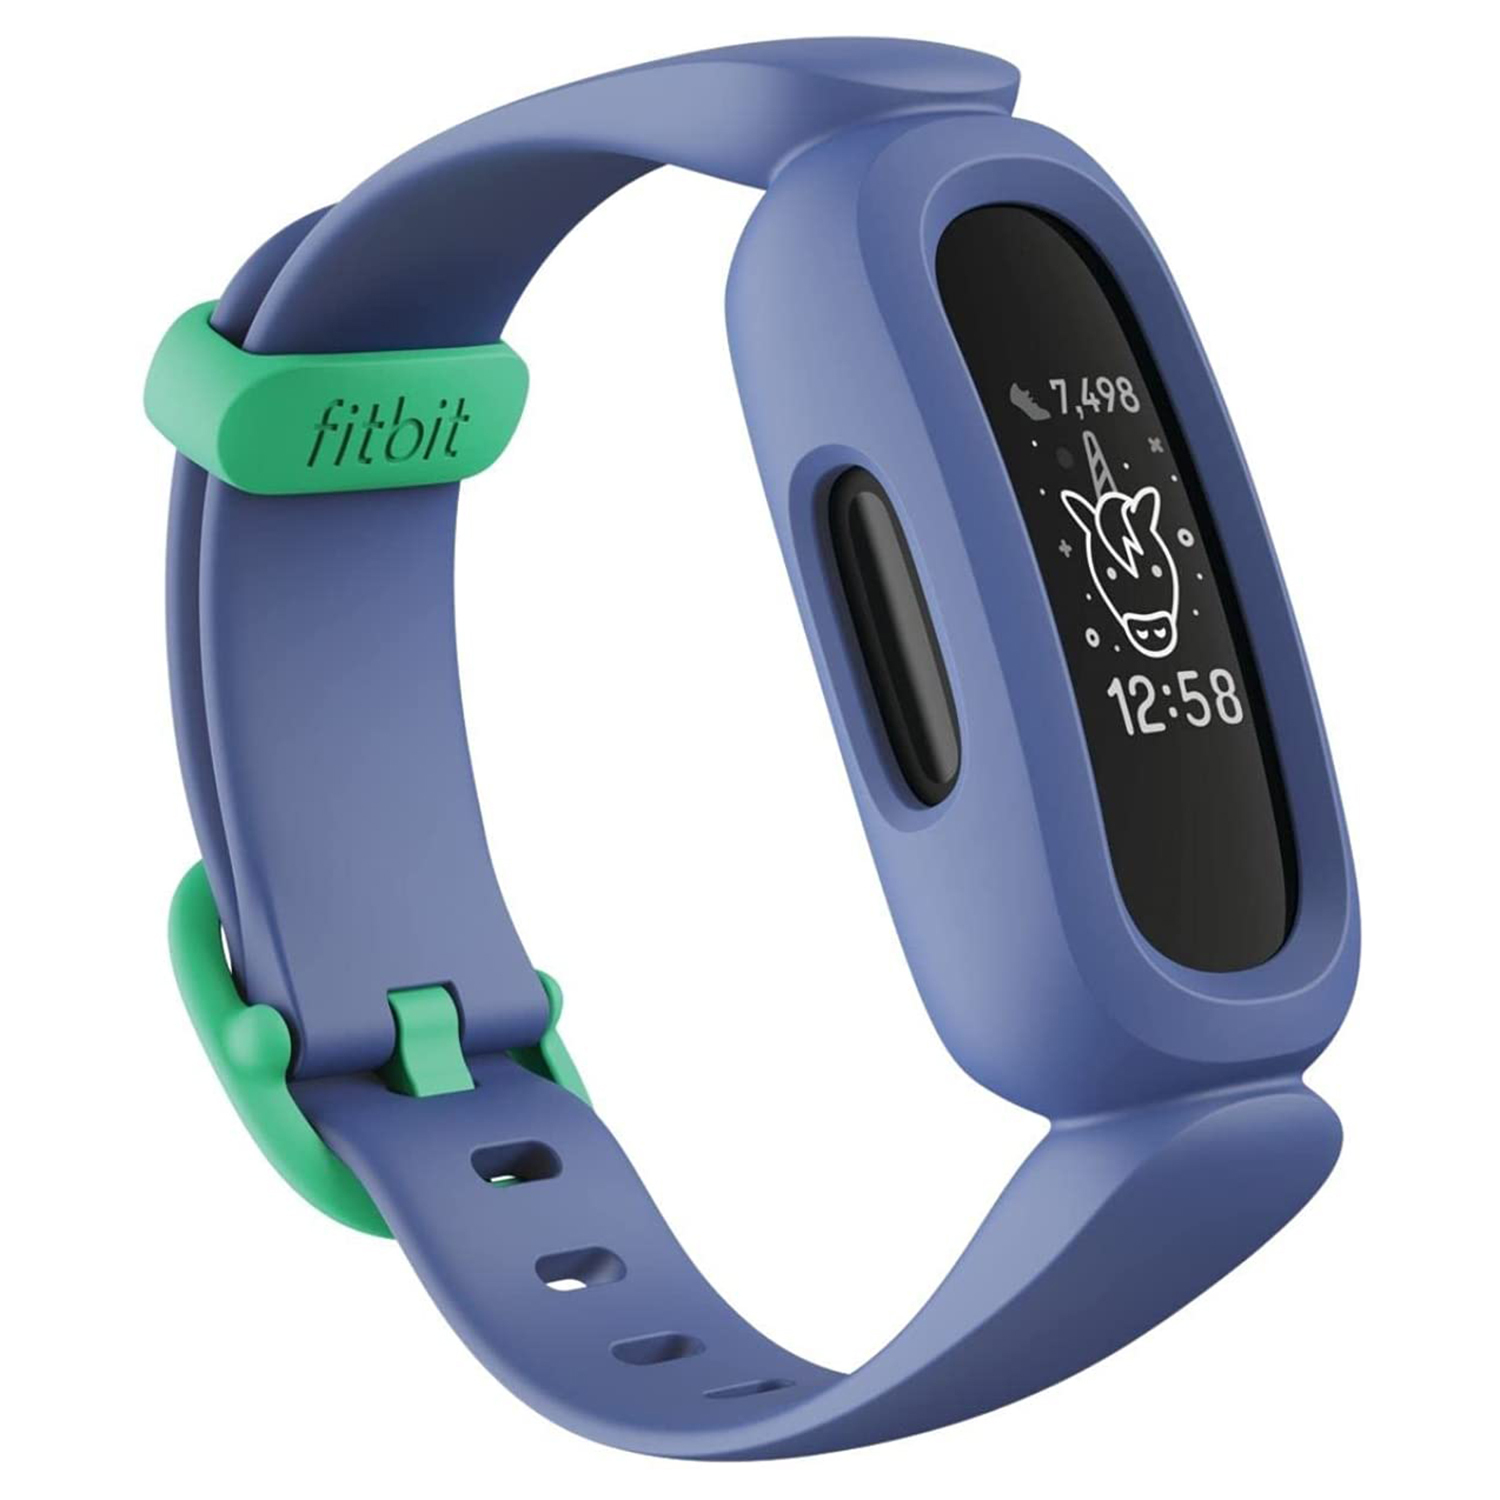 Best Fitness Tracker for Kids: Fitbit Ace 3 Activity Tracker